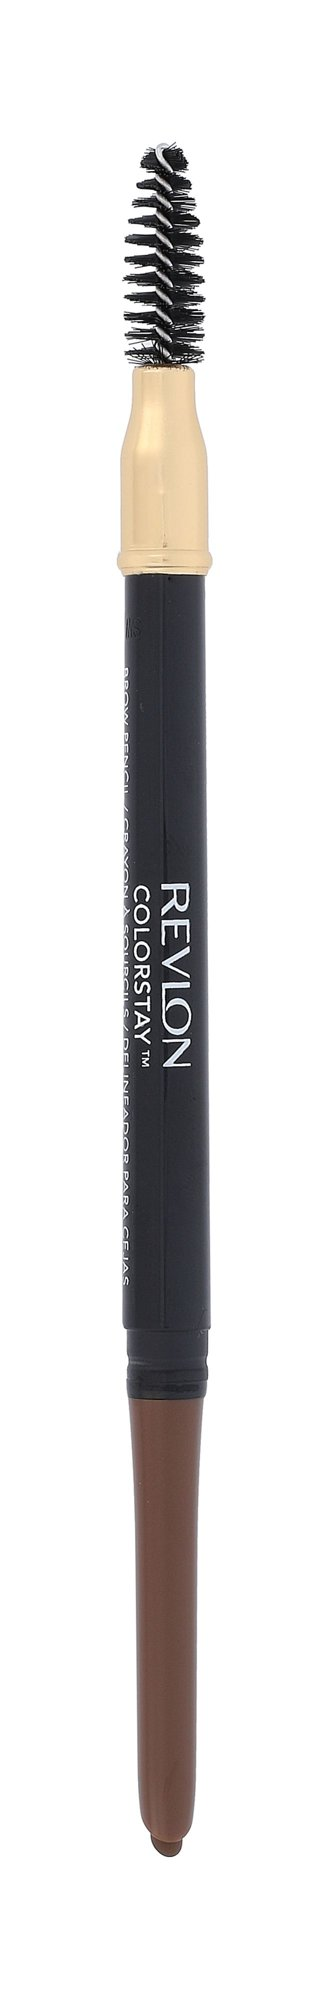 Revlon Colorstay Cosmetic 0,35ml 210 Soft Brown